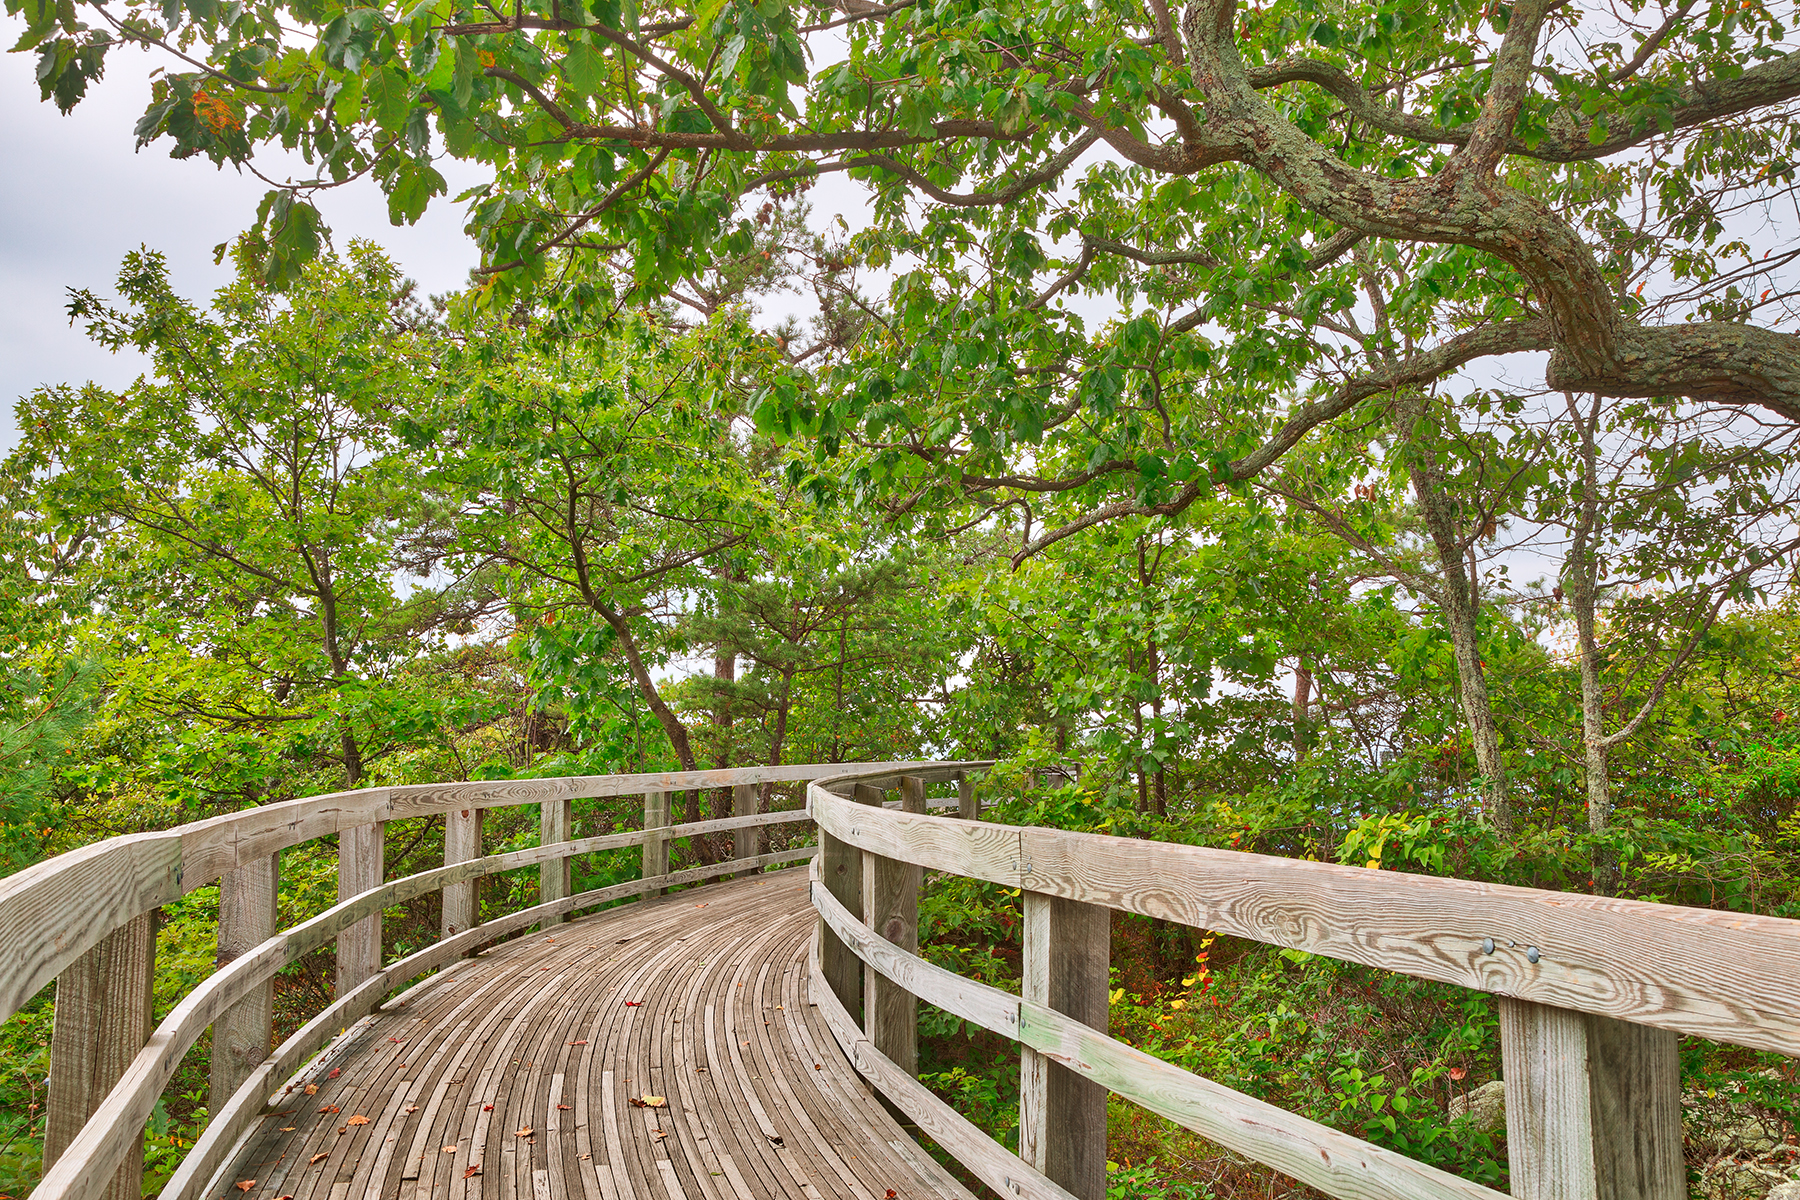 Boardwalk storybook trail - hdr photo